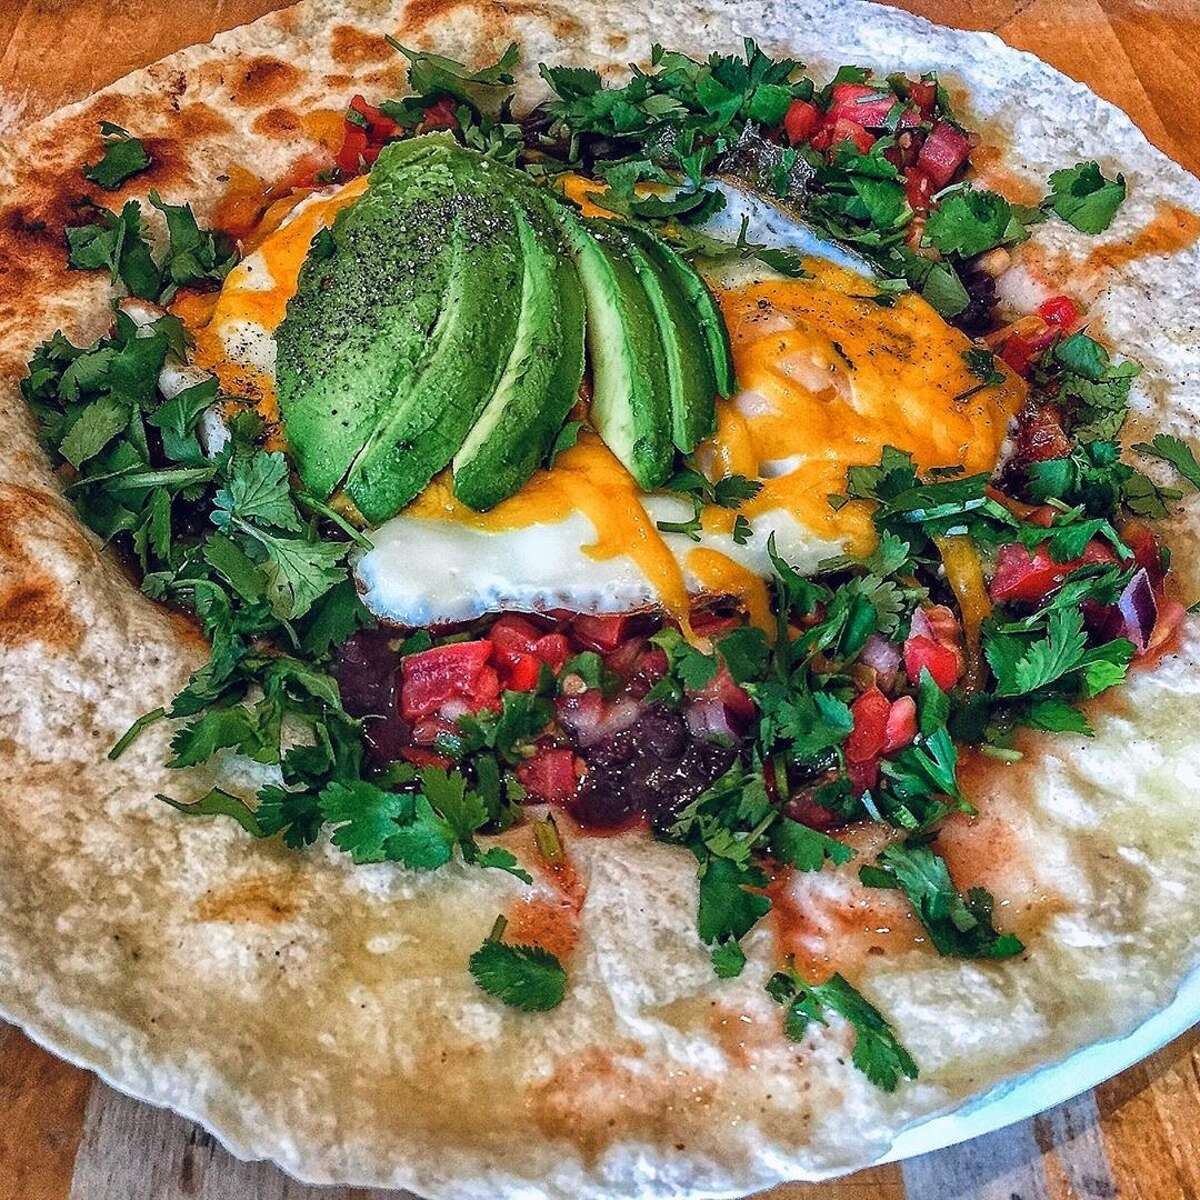 Huevos Rancheros from Rosie in New Canaan. Rosie Rosie has been serving breakfast, coffee and wine (for later in the day) six days a week since 2004. Huevos rancheros is a popular favorite here, but Rosies' egg burritos and made-to-order omelettes are worth trying too.